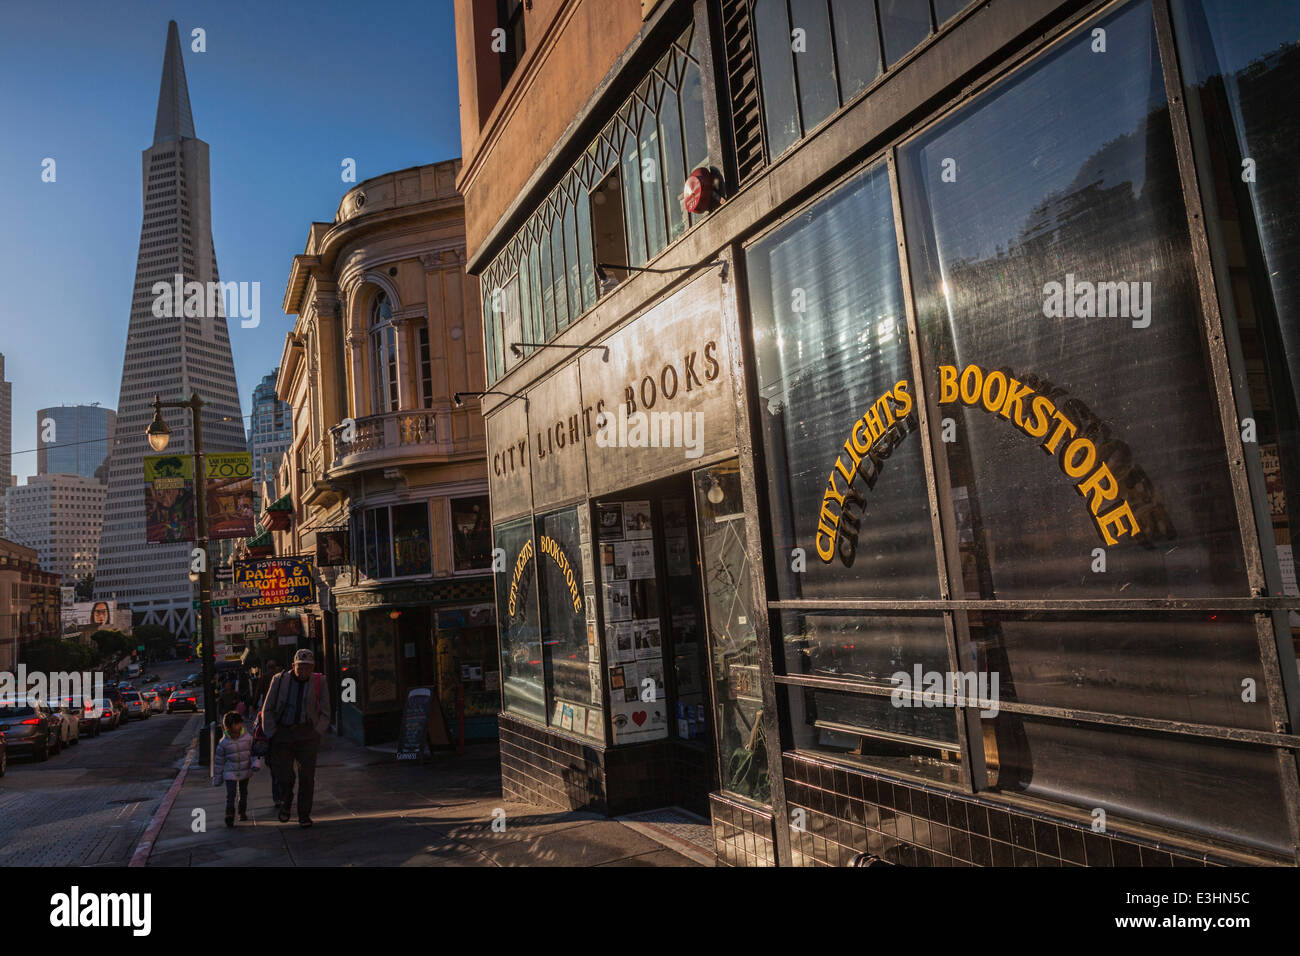 City Lights Bookstore, San Francisco, and in the background, the Transamerica Building. - Stock Image